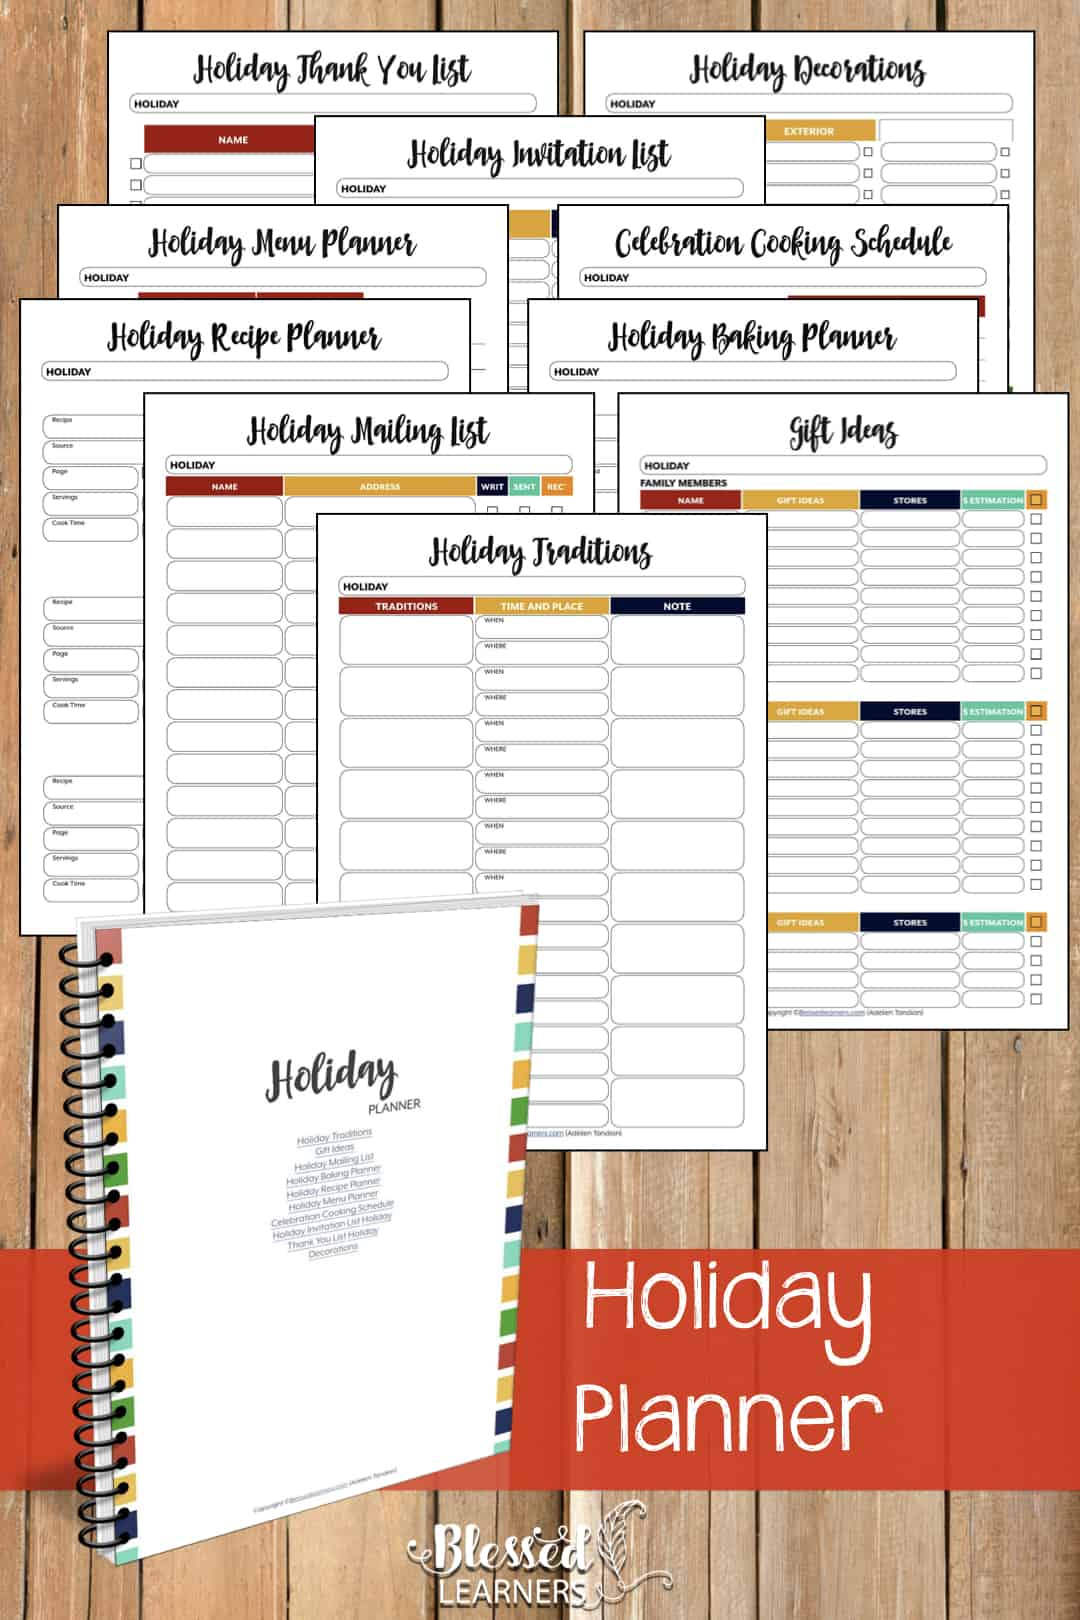 The Ultimate Life Planner Organizer for Moms is the perfect solution to getting most aspects of your home-and-work life well organized. A total of 230+ printable pages you can customize to use are included in the digital file. | Holiday Planner | #Planner #Printable #TimeManagement #Organizer